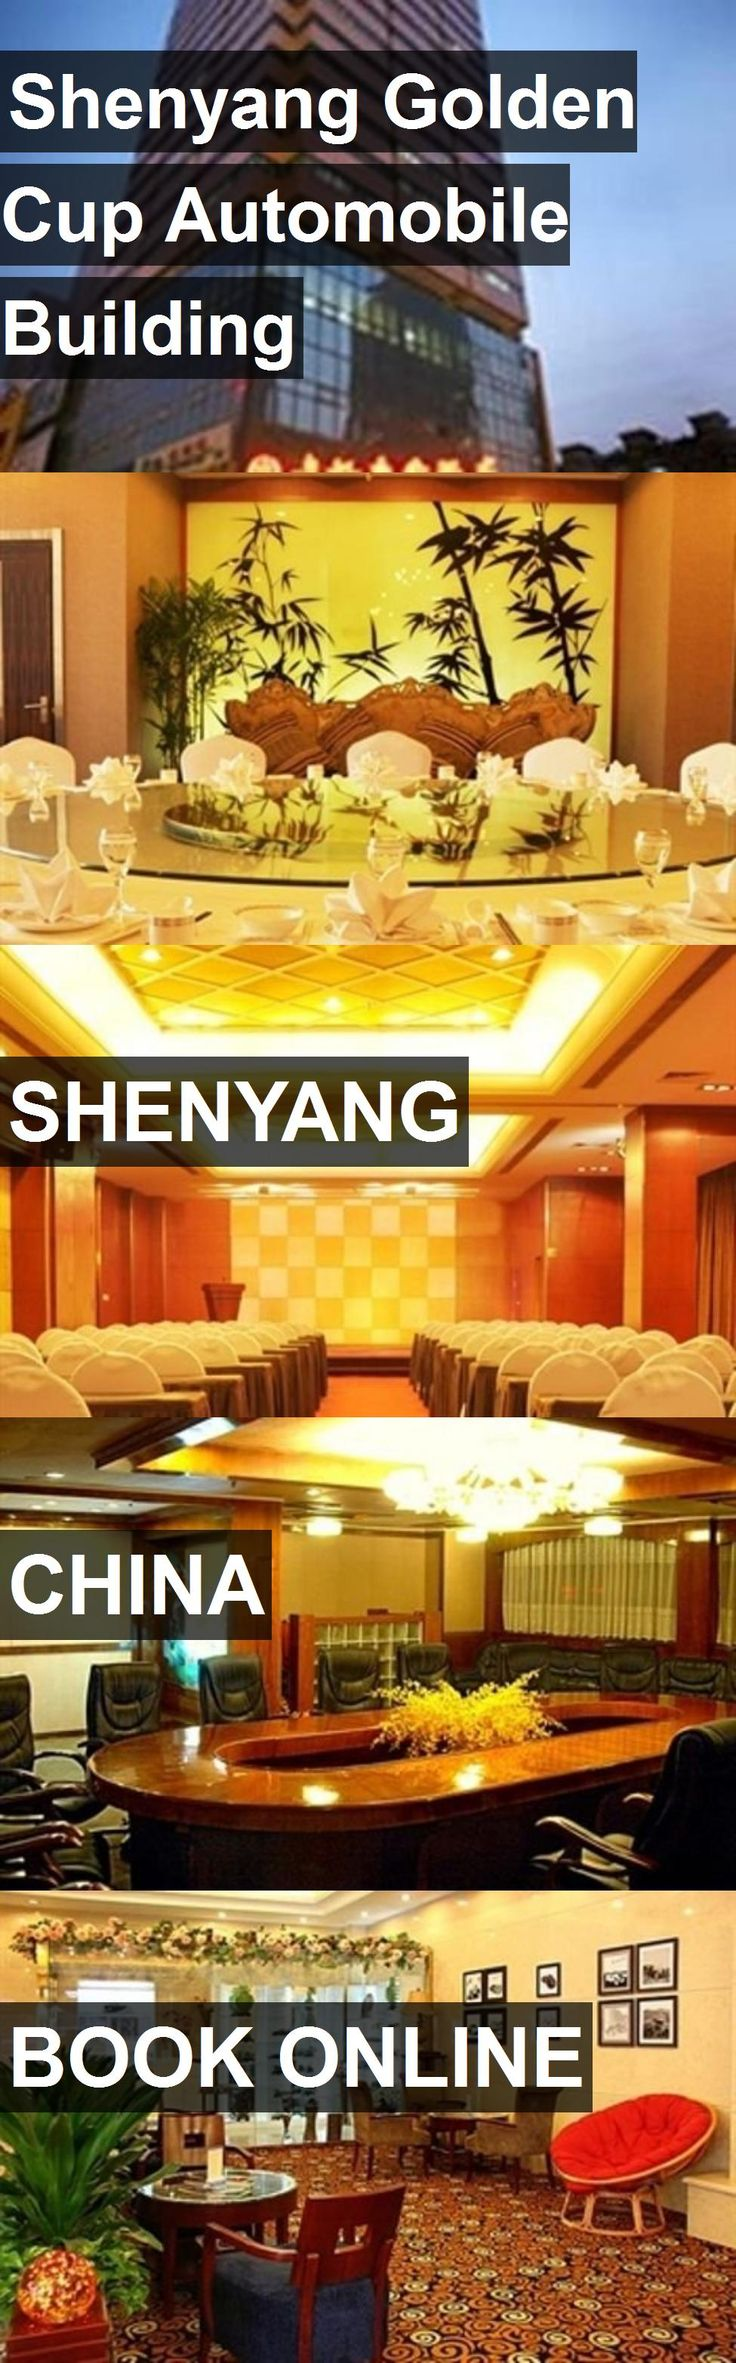 Hotel Shenyang Golden Cup Automobile Building in Shenyang, China. For more information, photos, reviews and best prices please follow the link. #China #Shenyang #ShenyangGoldenCupAutomobileBuilding #hotel #travel #vacation